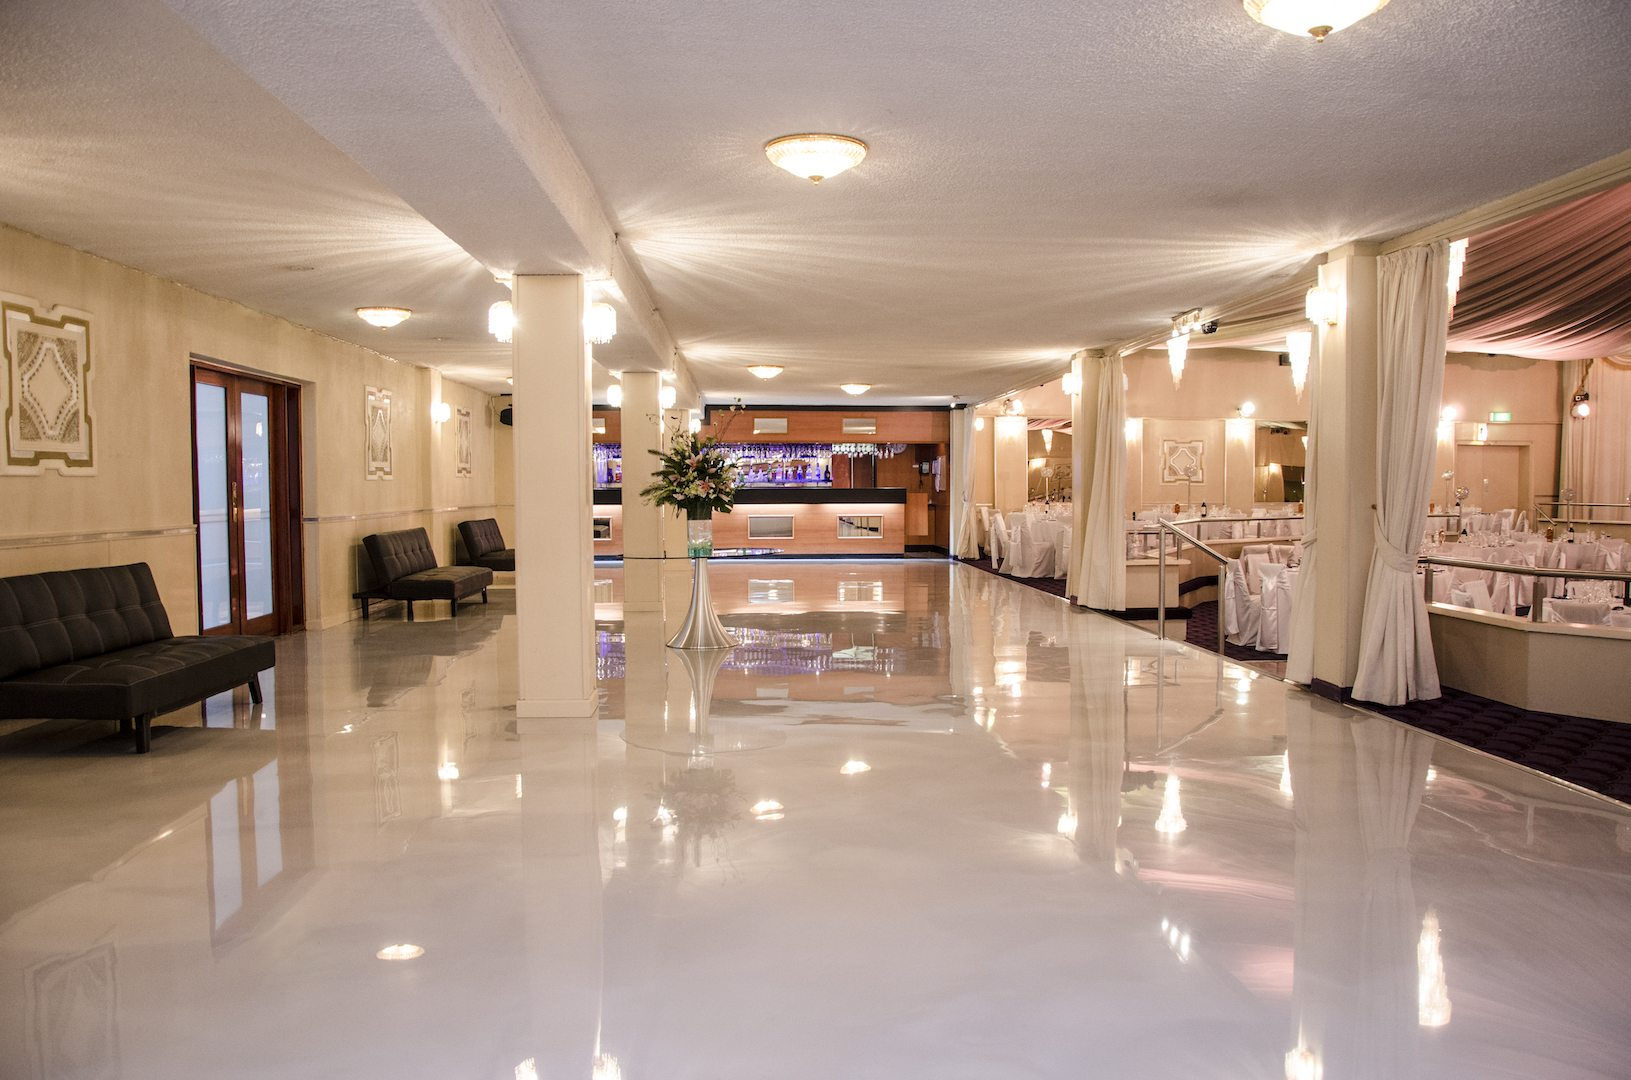 white marble floor with pillars